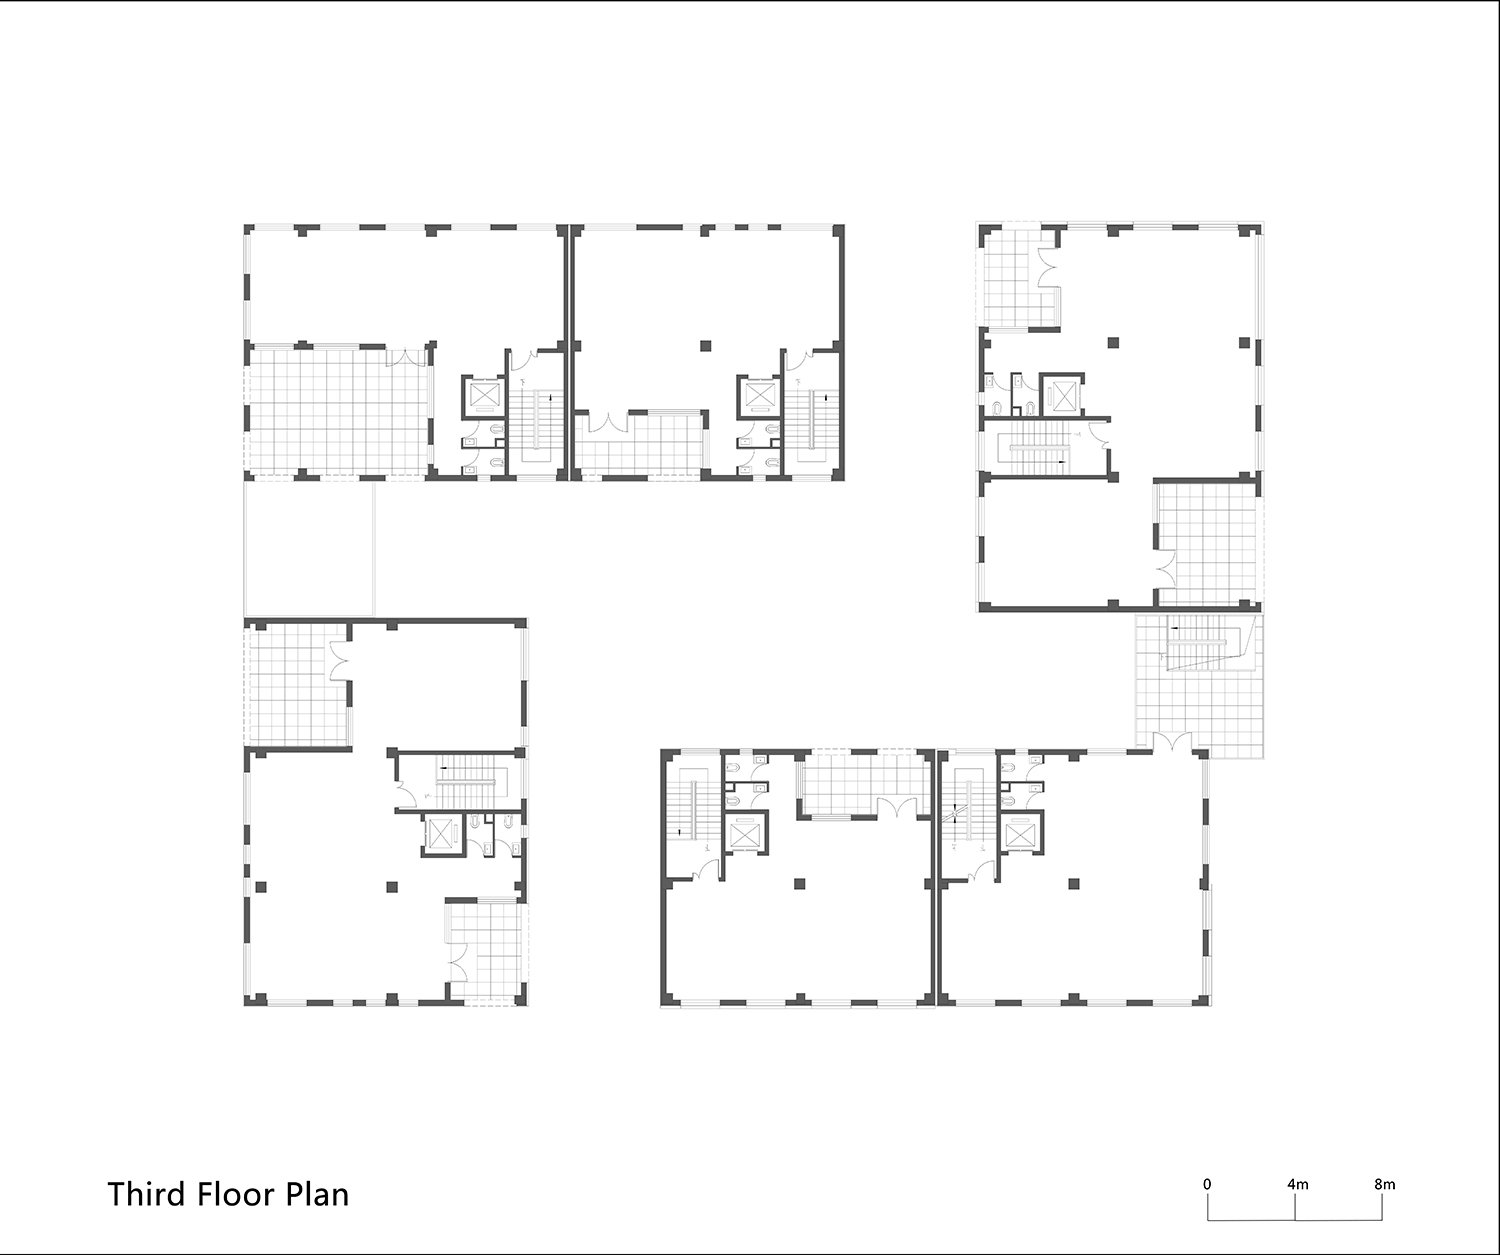 Third Floor Plan of One Building WSP ARCHITECTS}